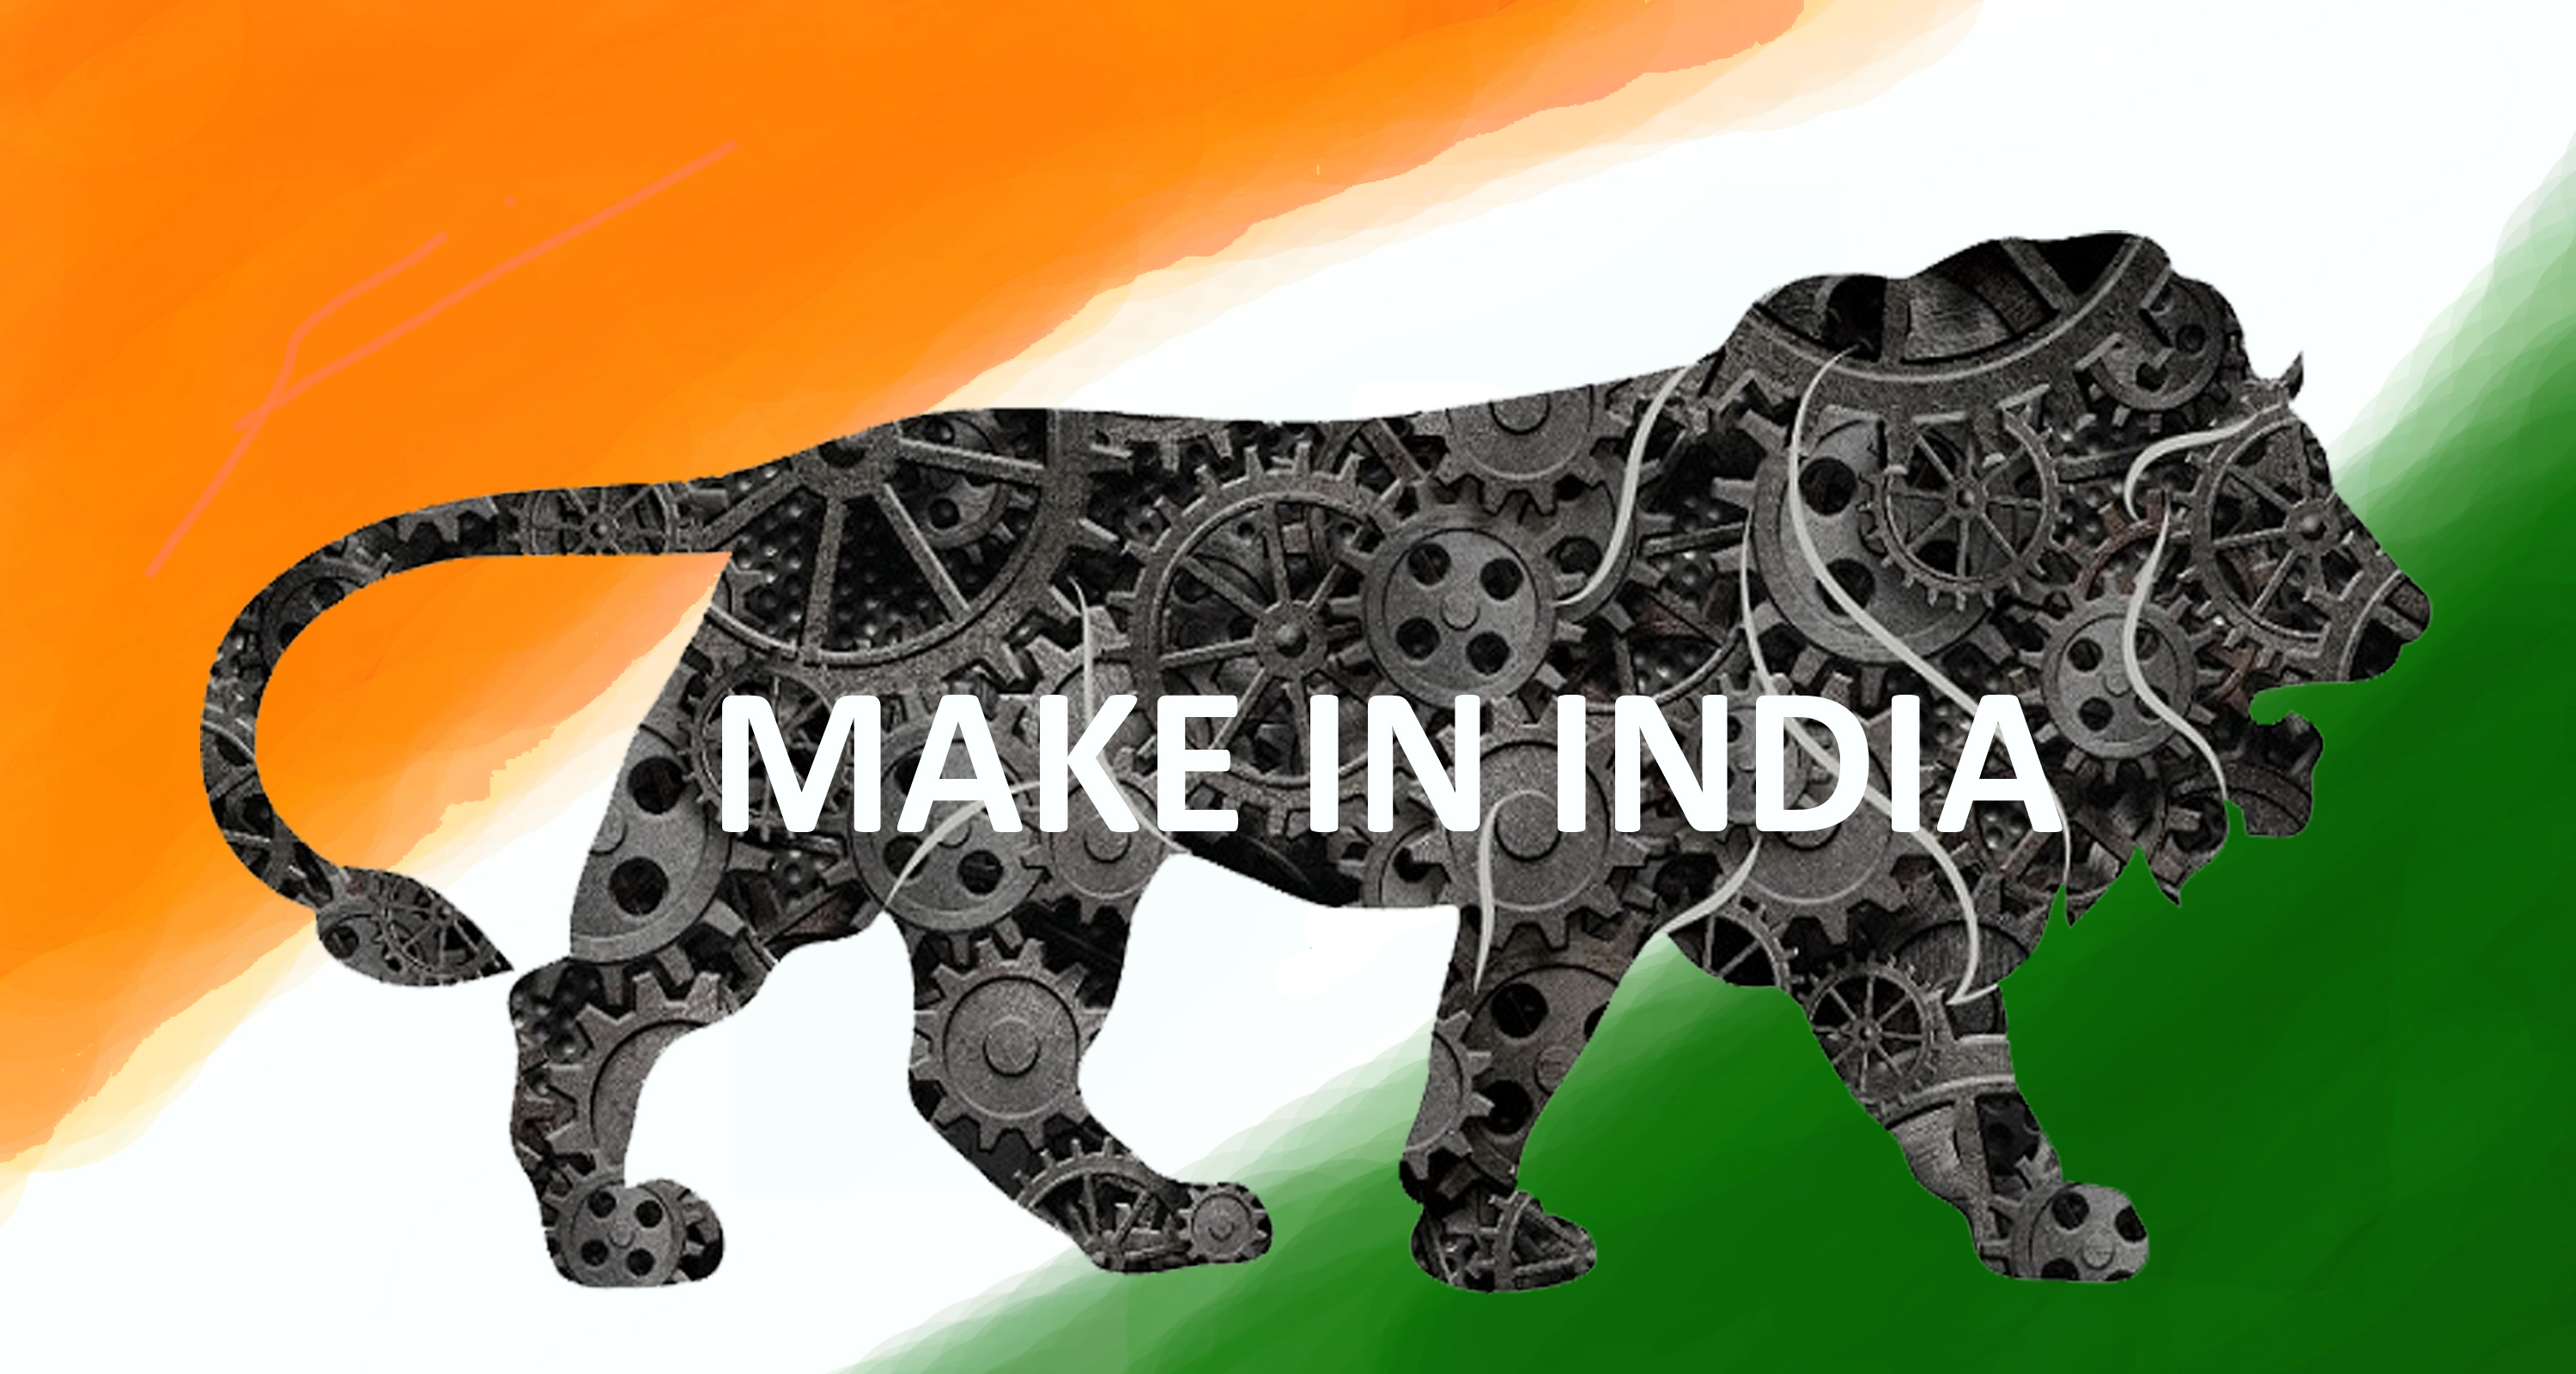 Strengthening of MSMEs & 'Make in India' find strong voice in Budget 2019